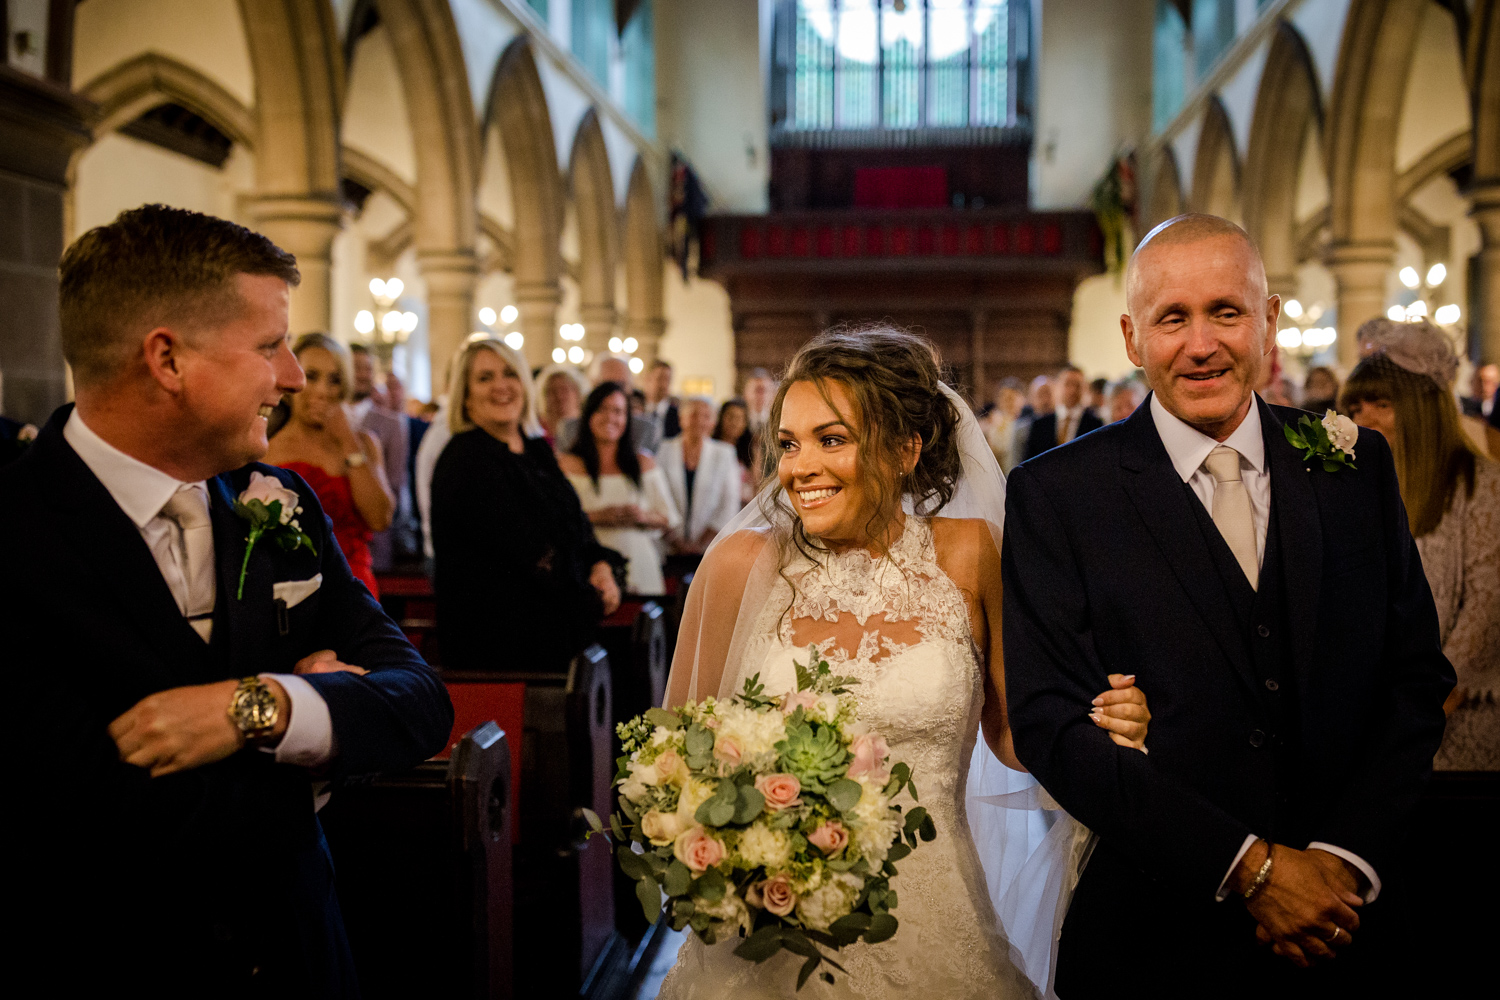 The bride is walked down the aisle by her dad